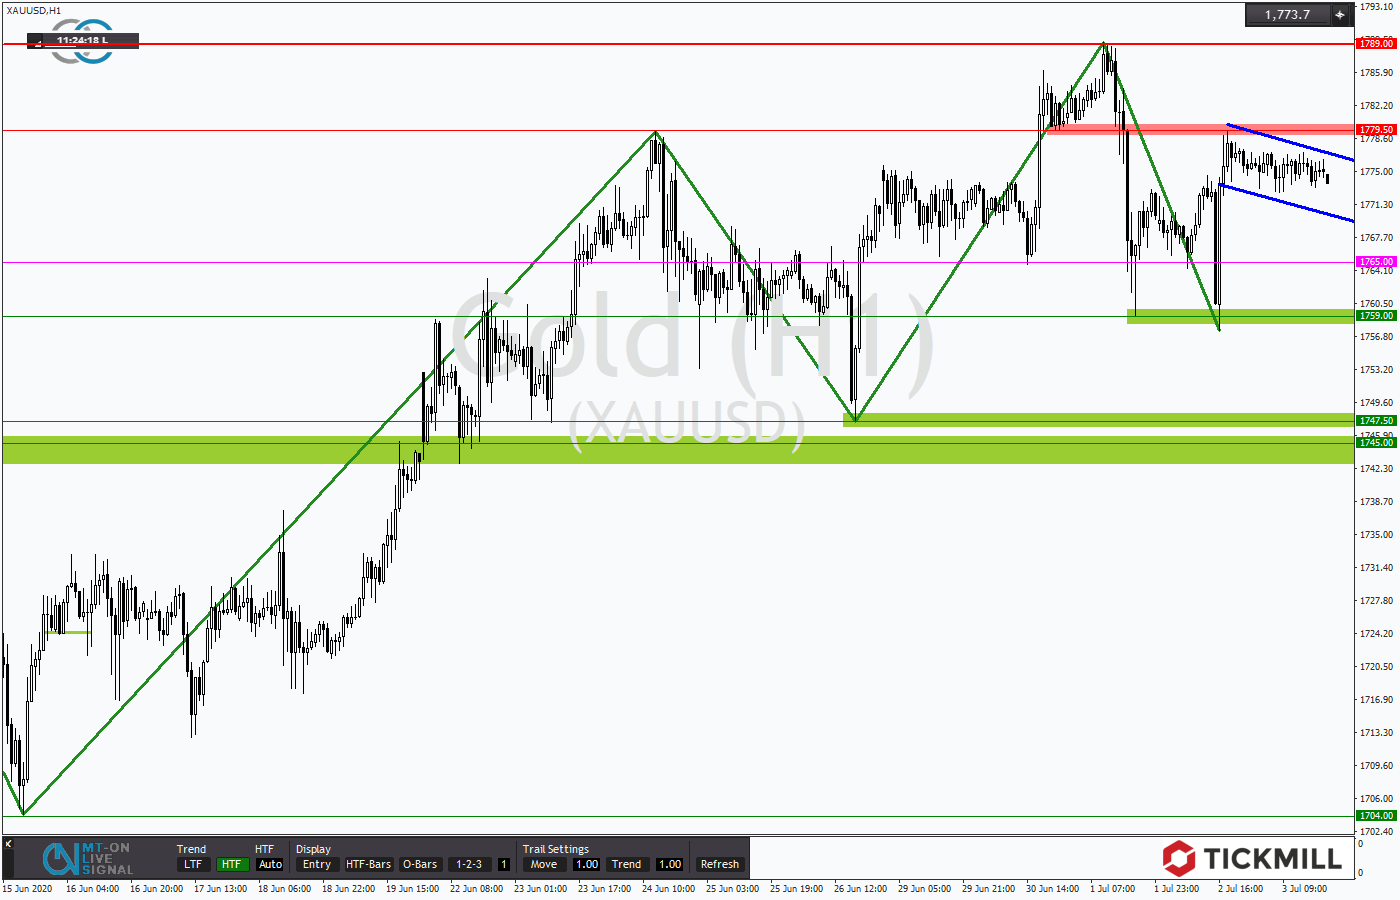 Tickmill-Analyse: Bullenflagge bei Gold